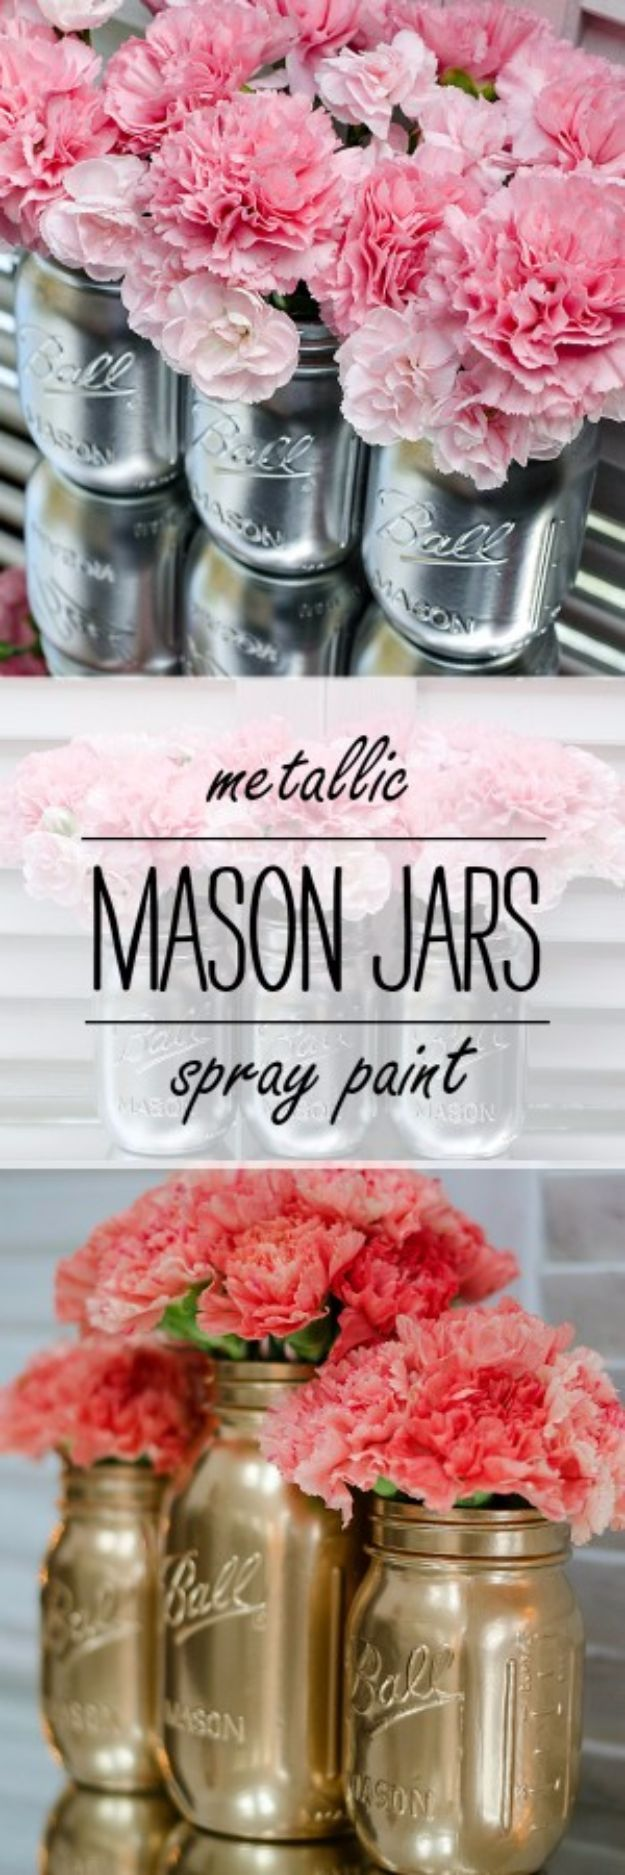 50 Cute DIY Mason Jar Crafts | Mason jar lighting, Mason ...